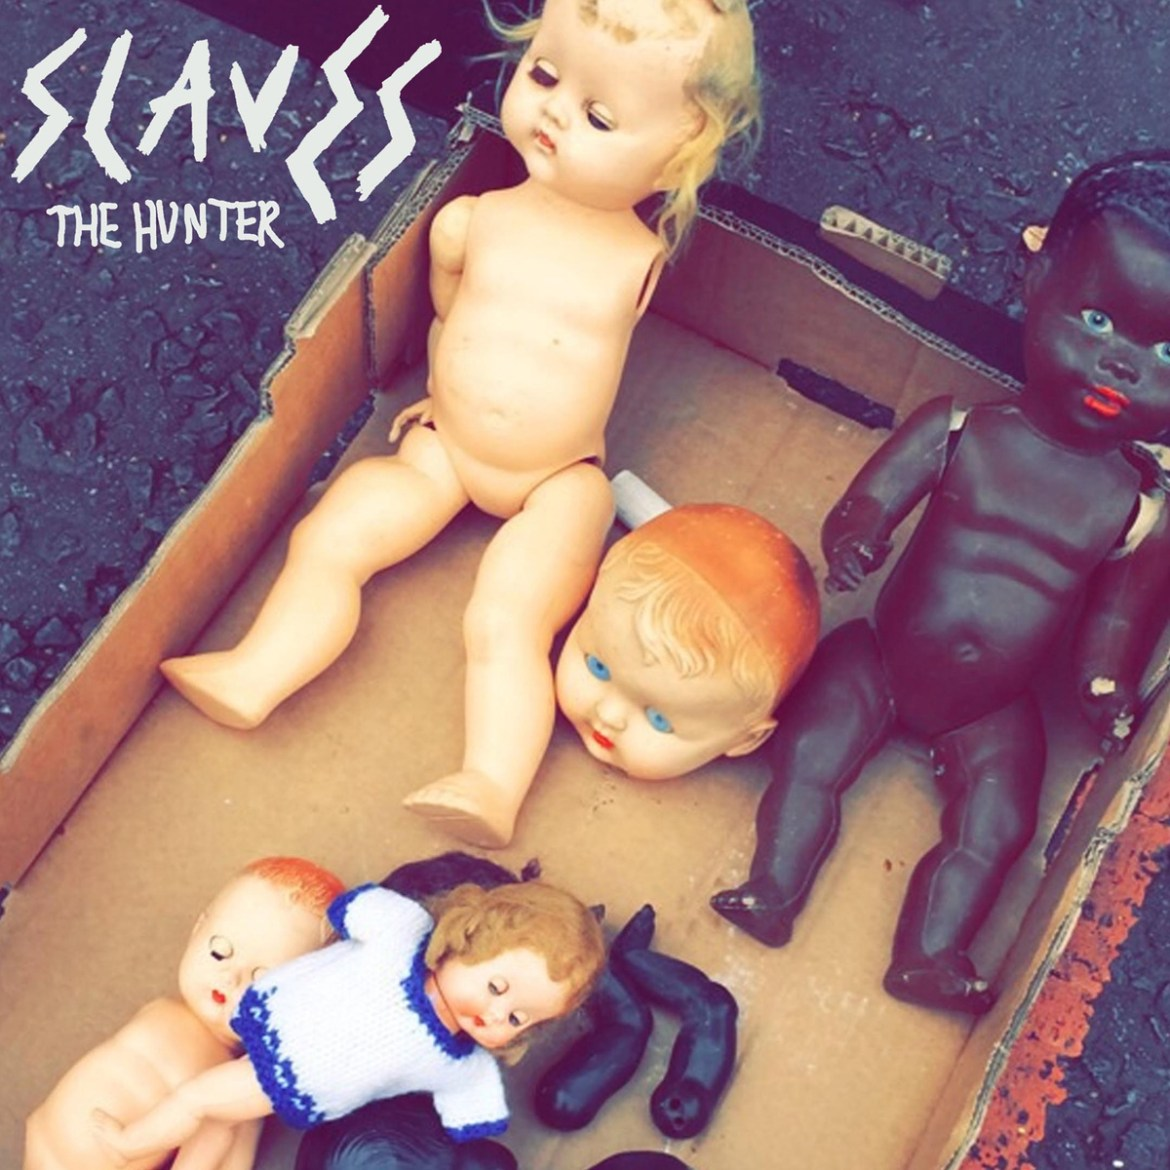 NEWS: Slaves unveil new single, video and NME tour dates